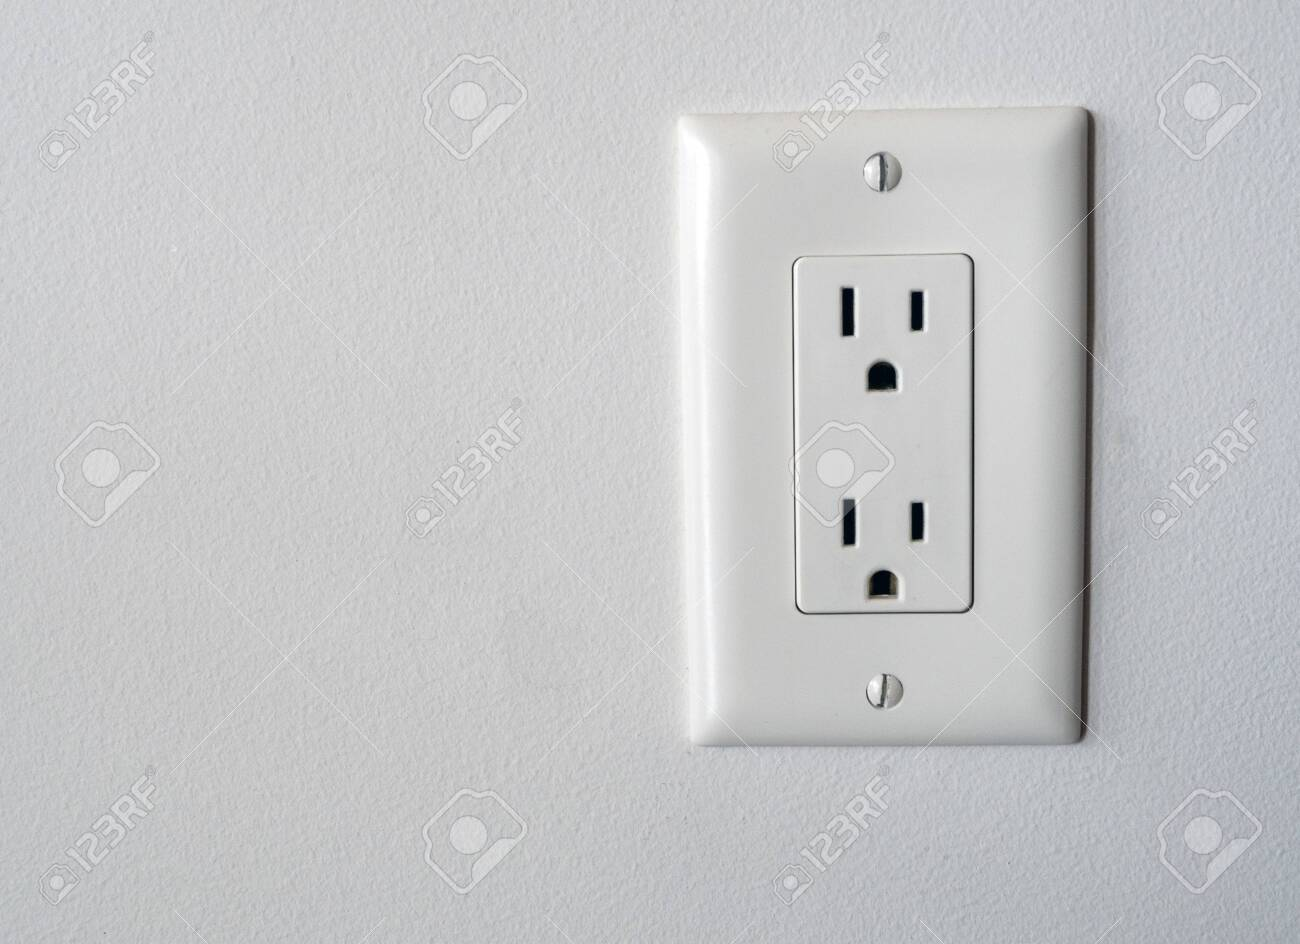 Isolated North American power outlet plug in socket on a white wall background Type B style - 129074139